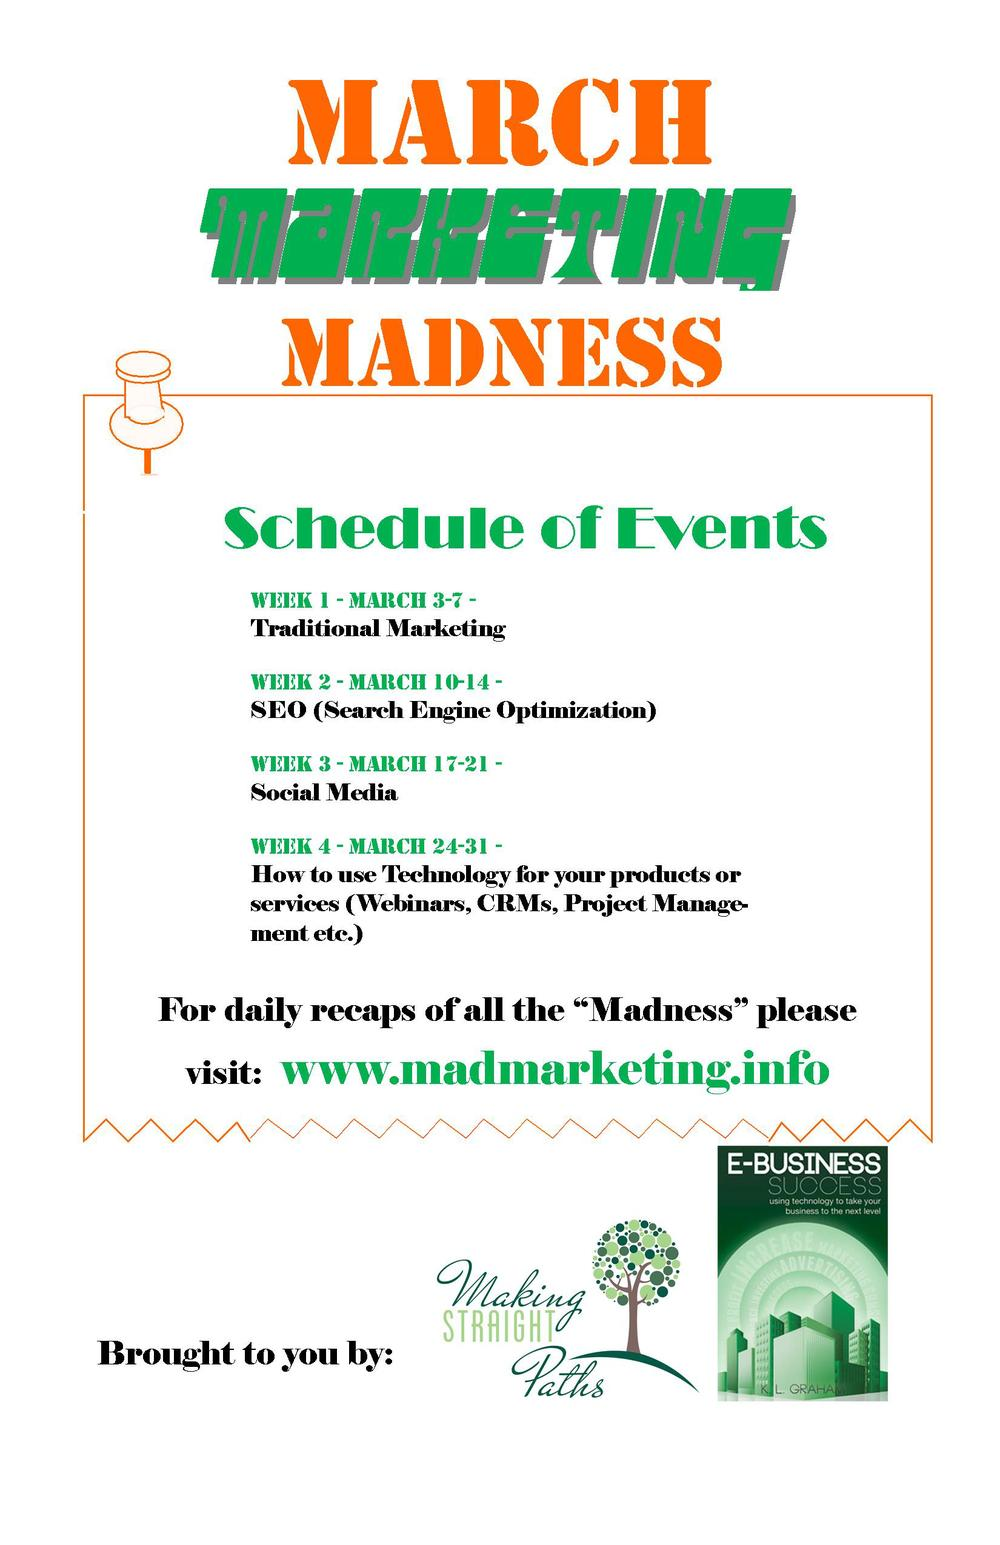 March Marketing Madness Flyer - Schedule of events.